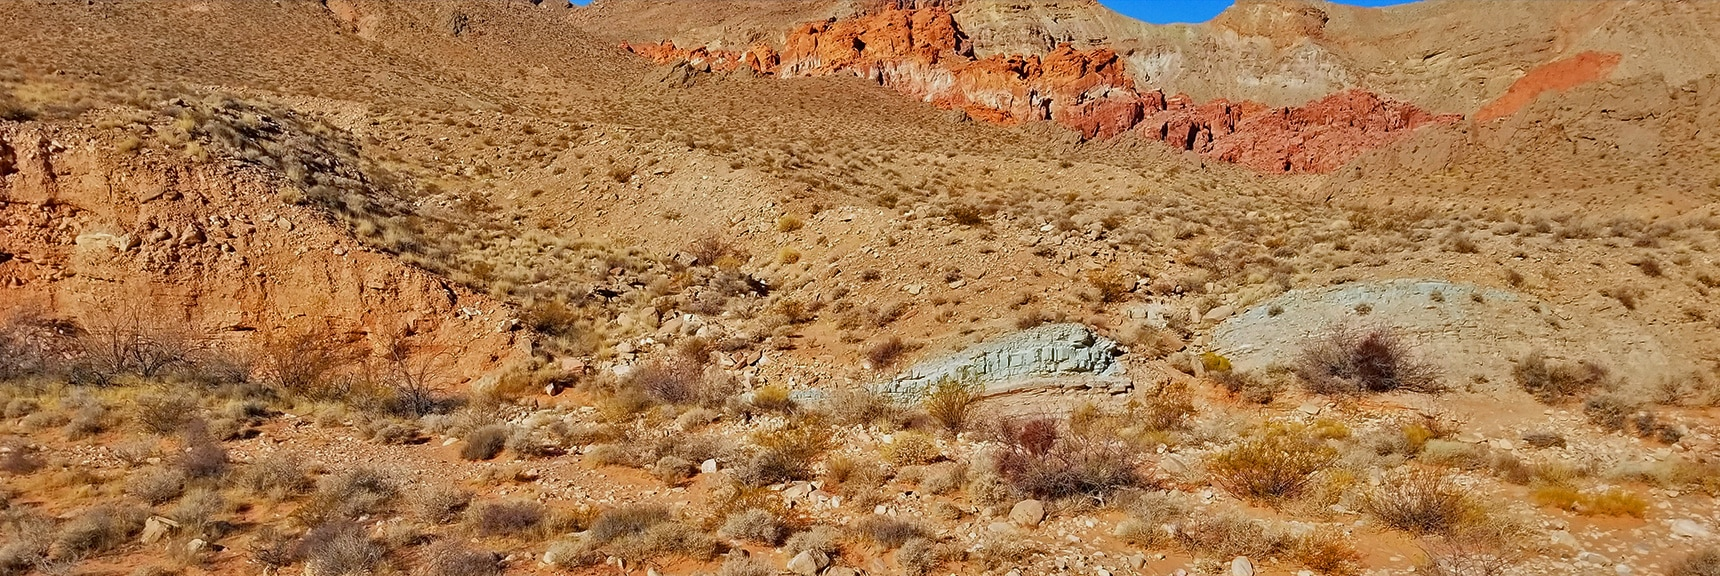 Trail Descends to the Wash Leading to Bowl of Fire | Bowl of Fire, Lake Mead National Recreation Area, Nevada